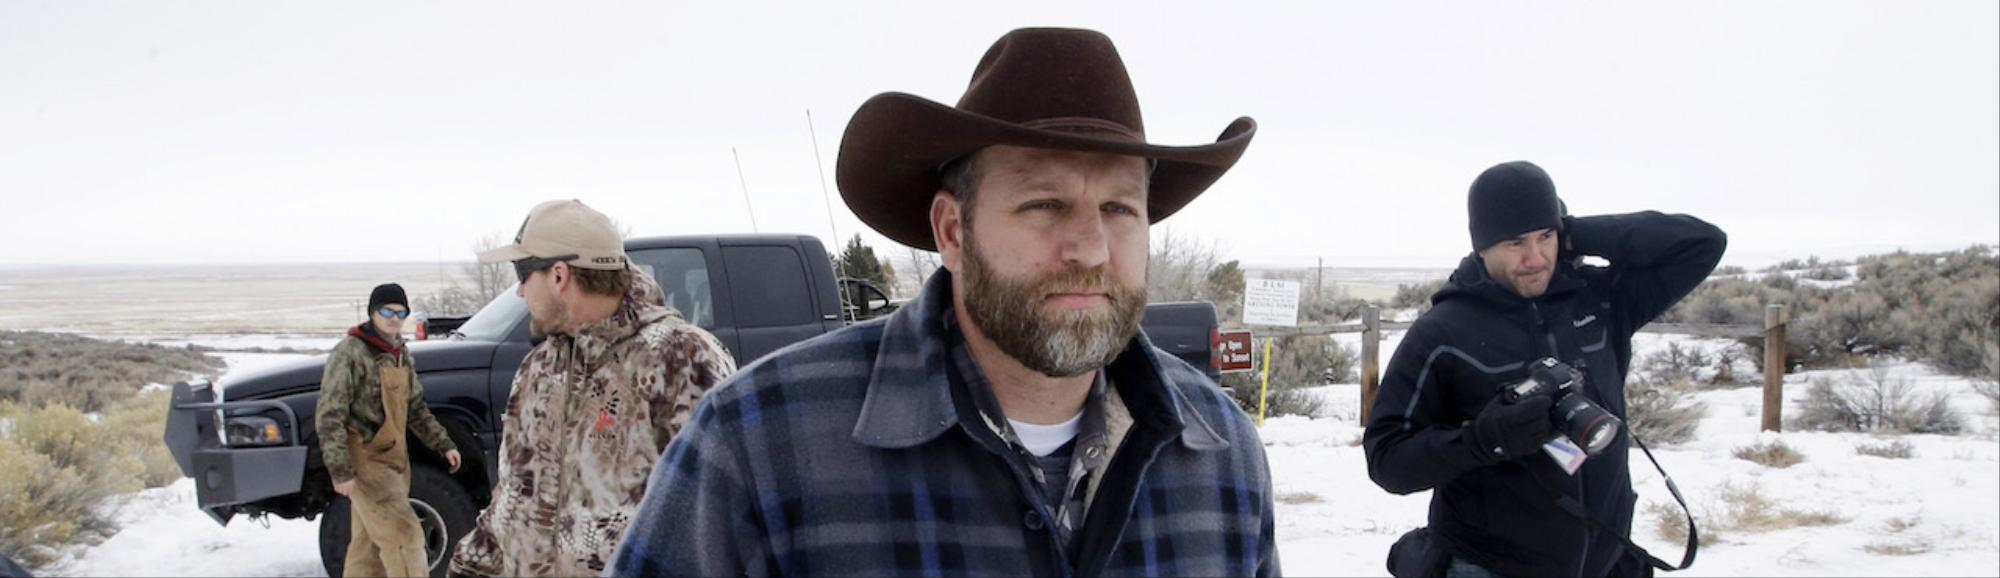 The Oregon Militia's Mormon Leader Is Getting Snubbed by the Mormon Church